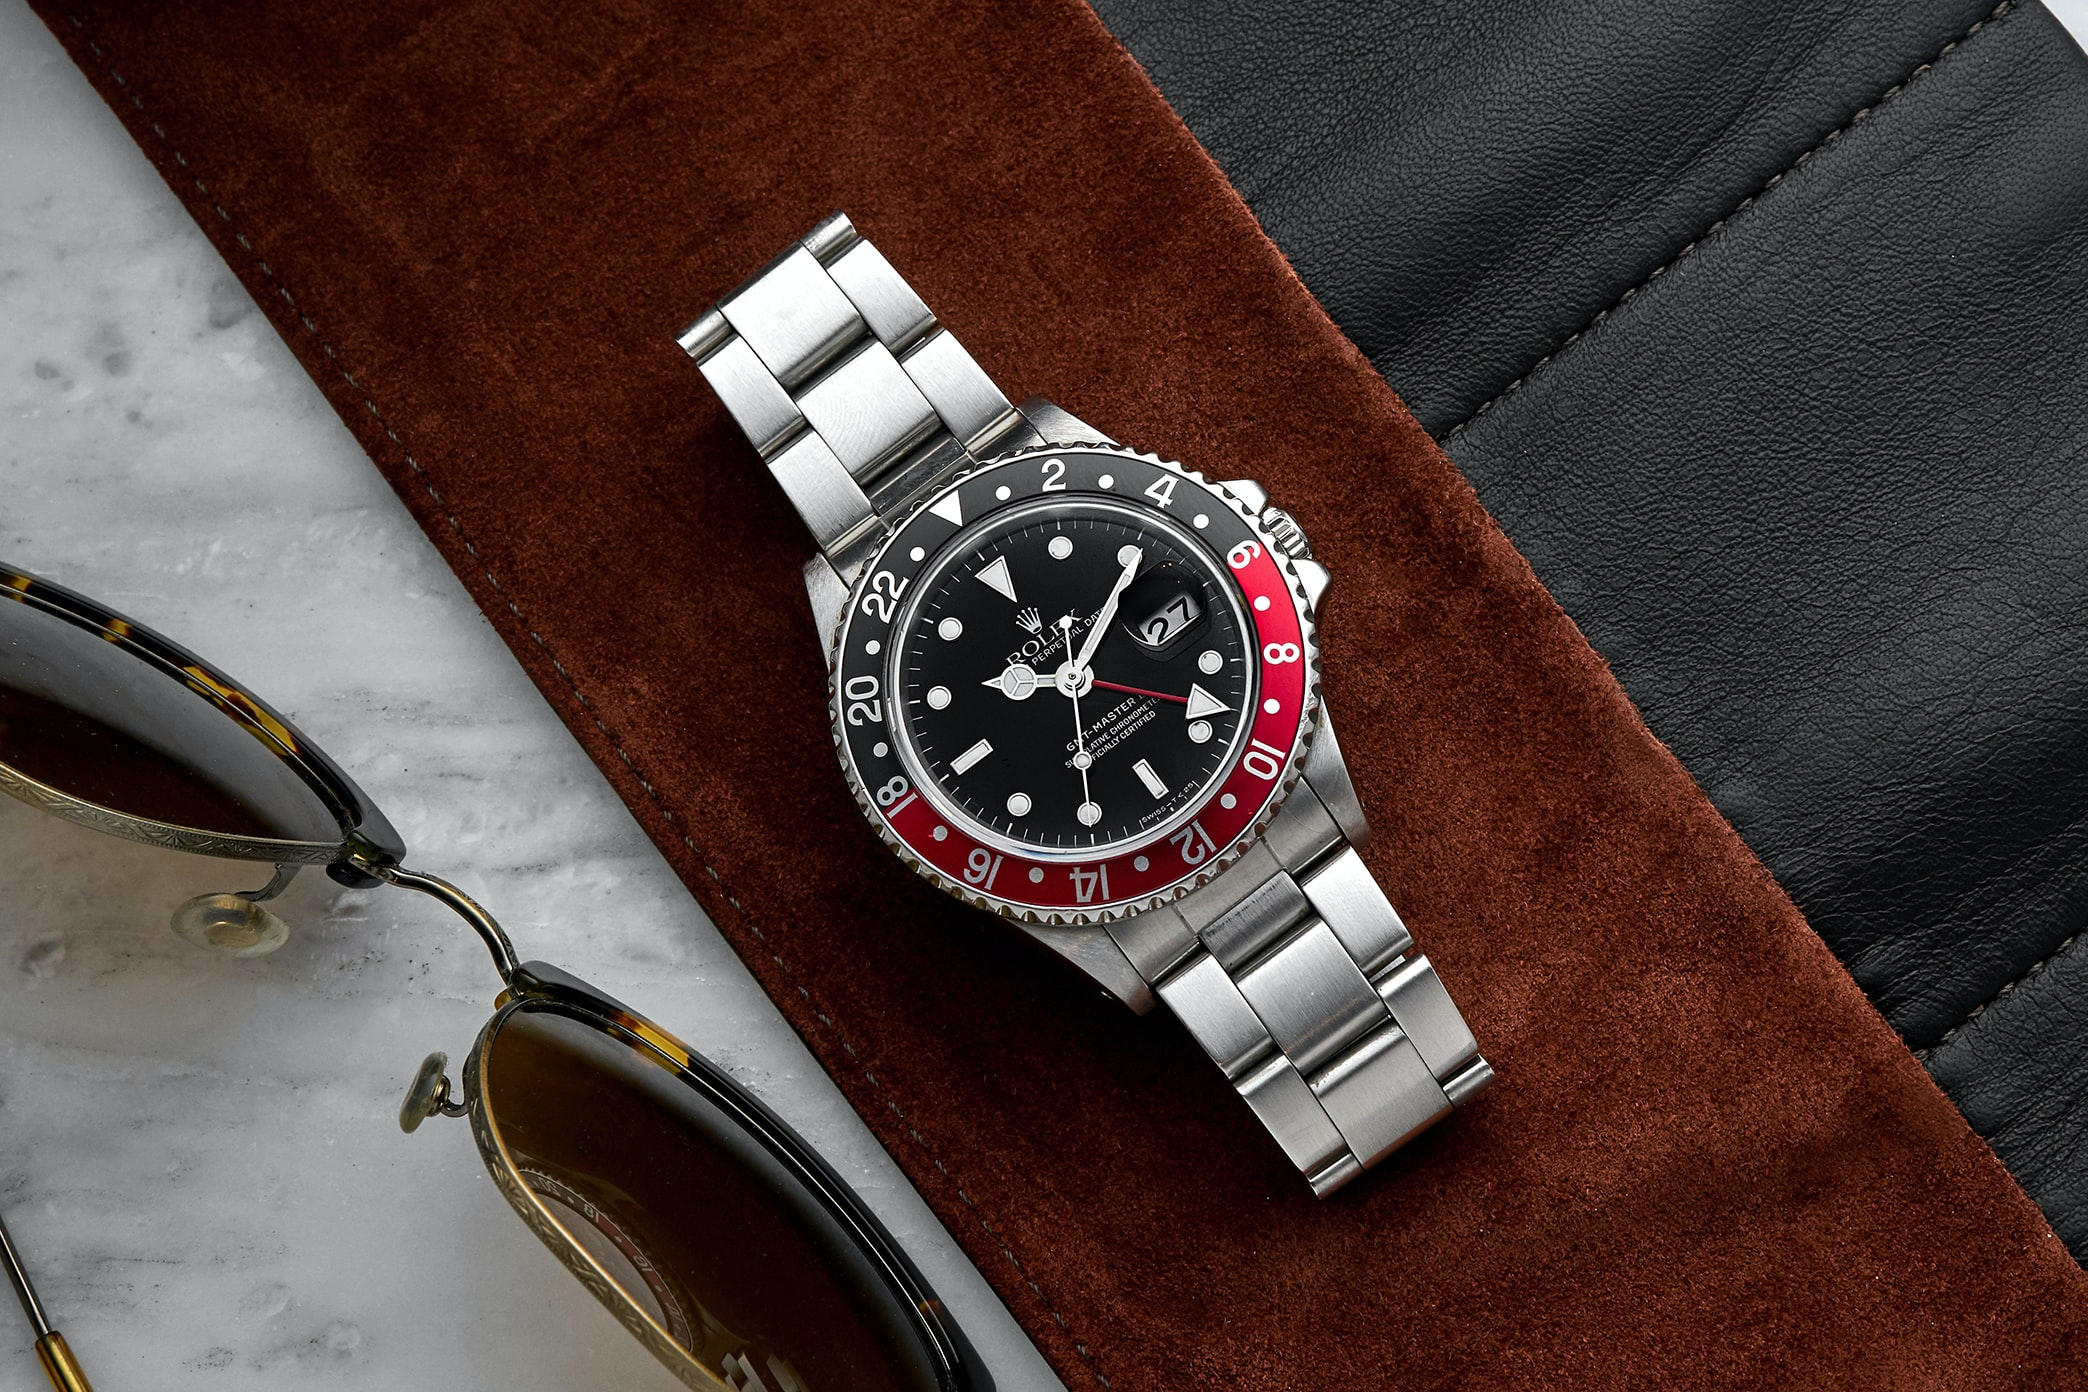 In The Shop - Vintage Watches: A 1984 Rolex GMT-Master II 16760 'Fat Lady,' A 1970s Breitling Chrono-Matic 7651, And A 1972 Rolex Day-Date Reference 1803 In The Shop – Vintage Watches: A 1984 Rolex GMT-Master II 16760 'Fat Lady,' A 1970s Breitling Chrono-Matic 7651, And A 1972 Rolex Day-Date Reference 1803 1025 RolexGMT Lifestyle